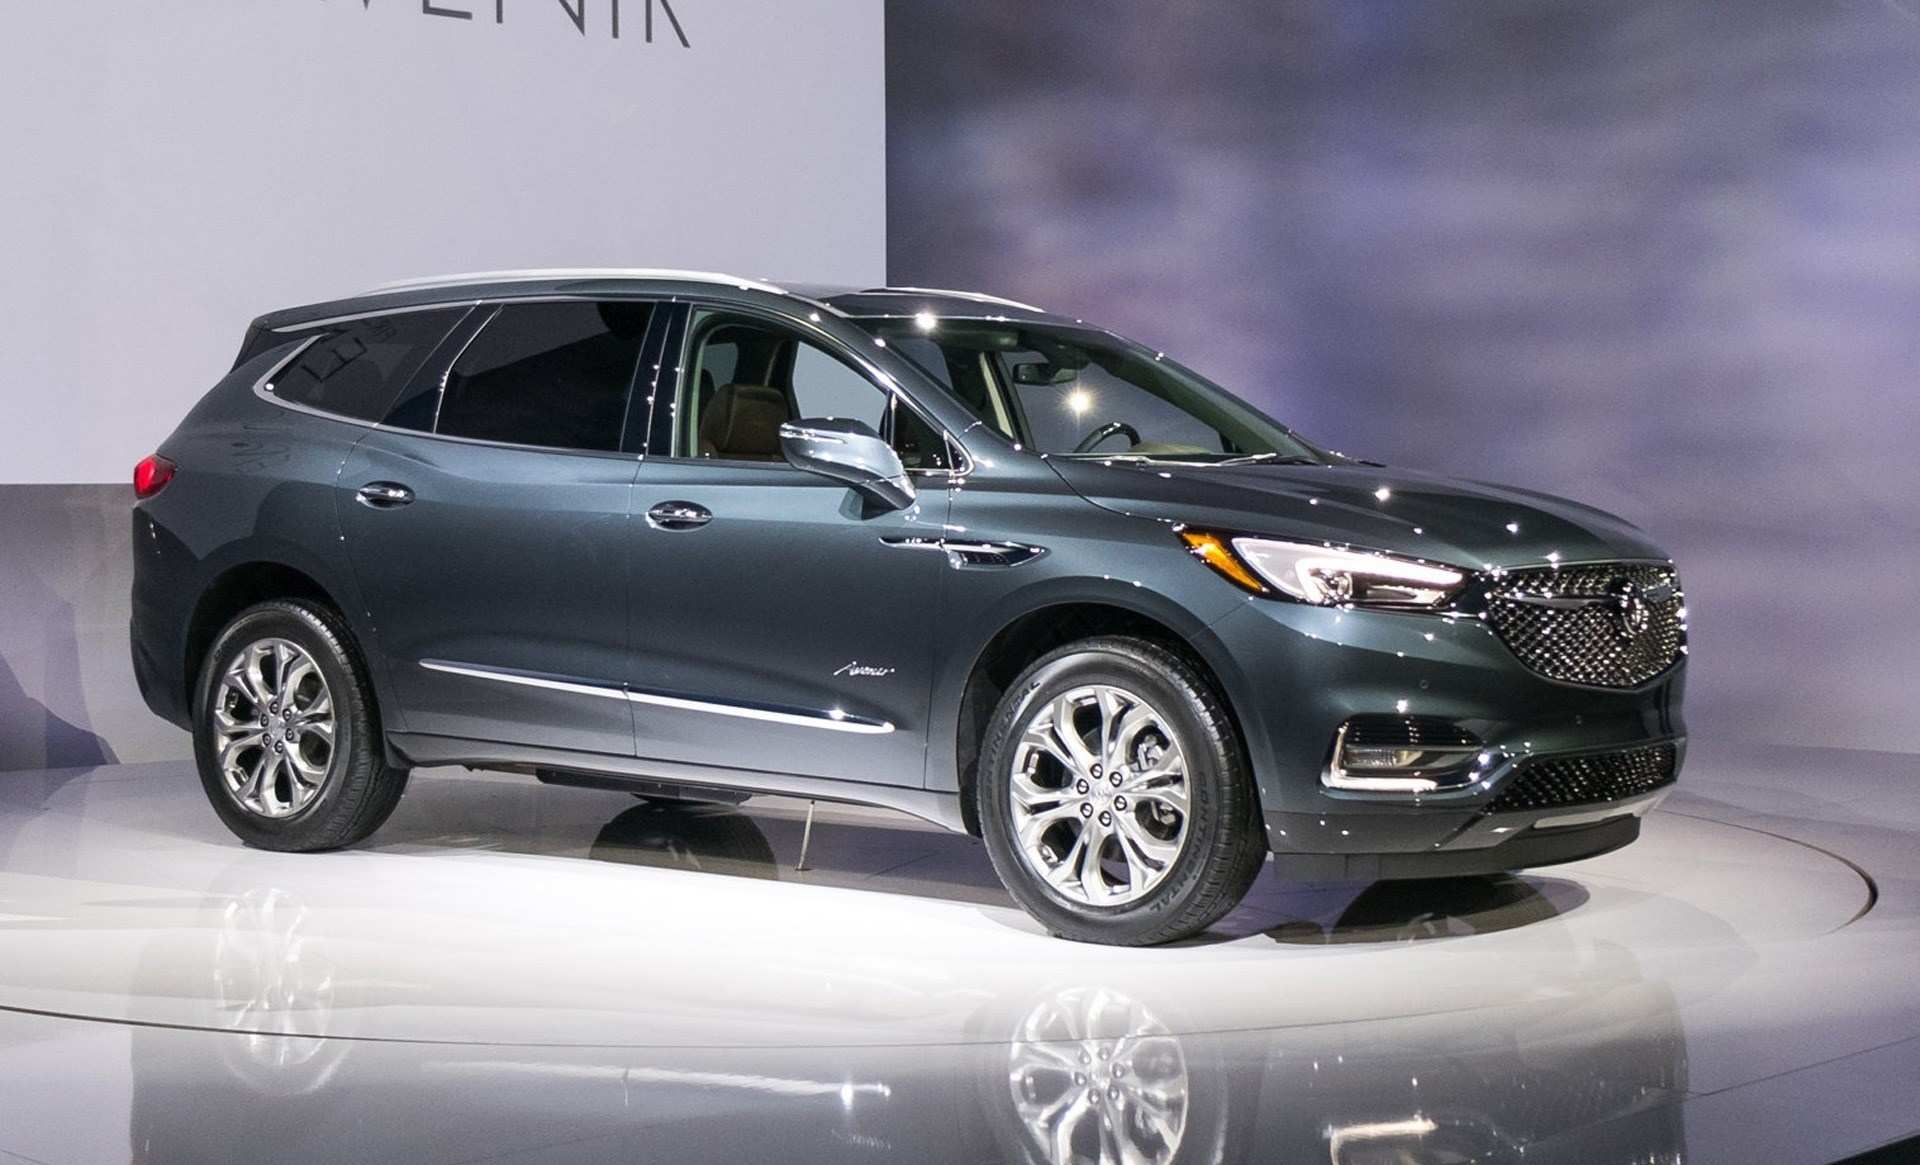 44 All New 2019 Buick Enclave Spy Photos Ratings for 2019 Buick Enclave Spy Photos